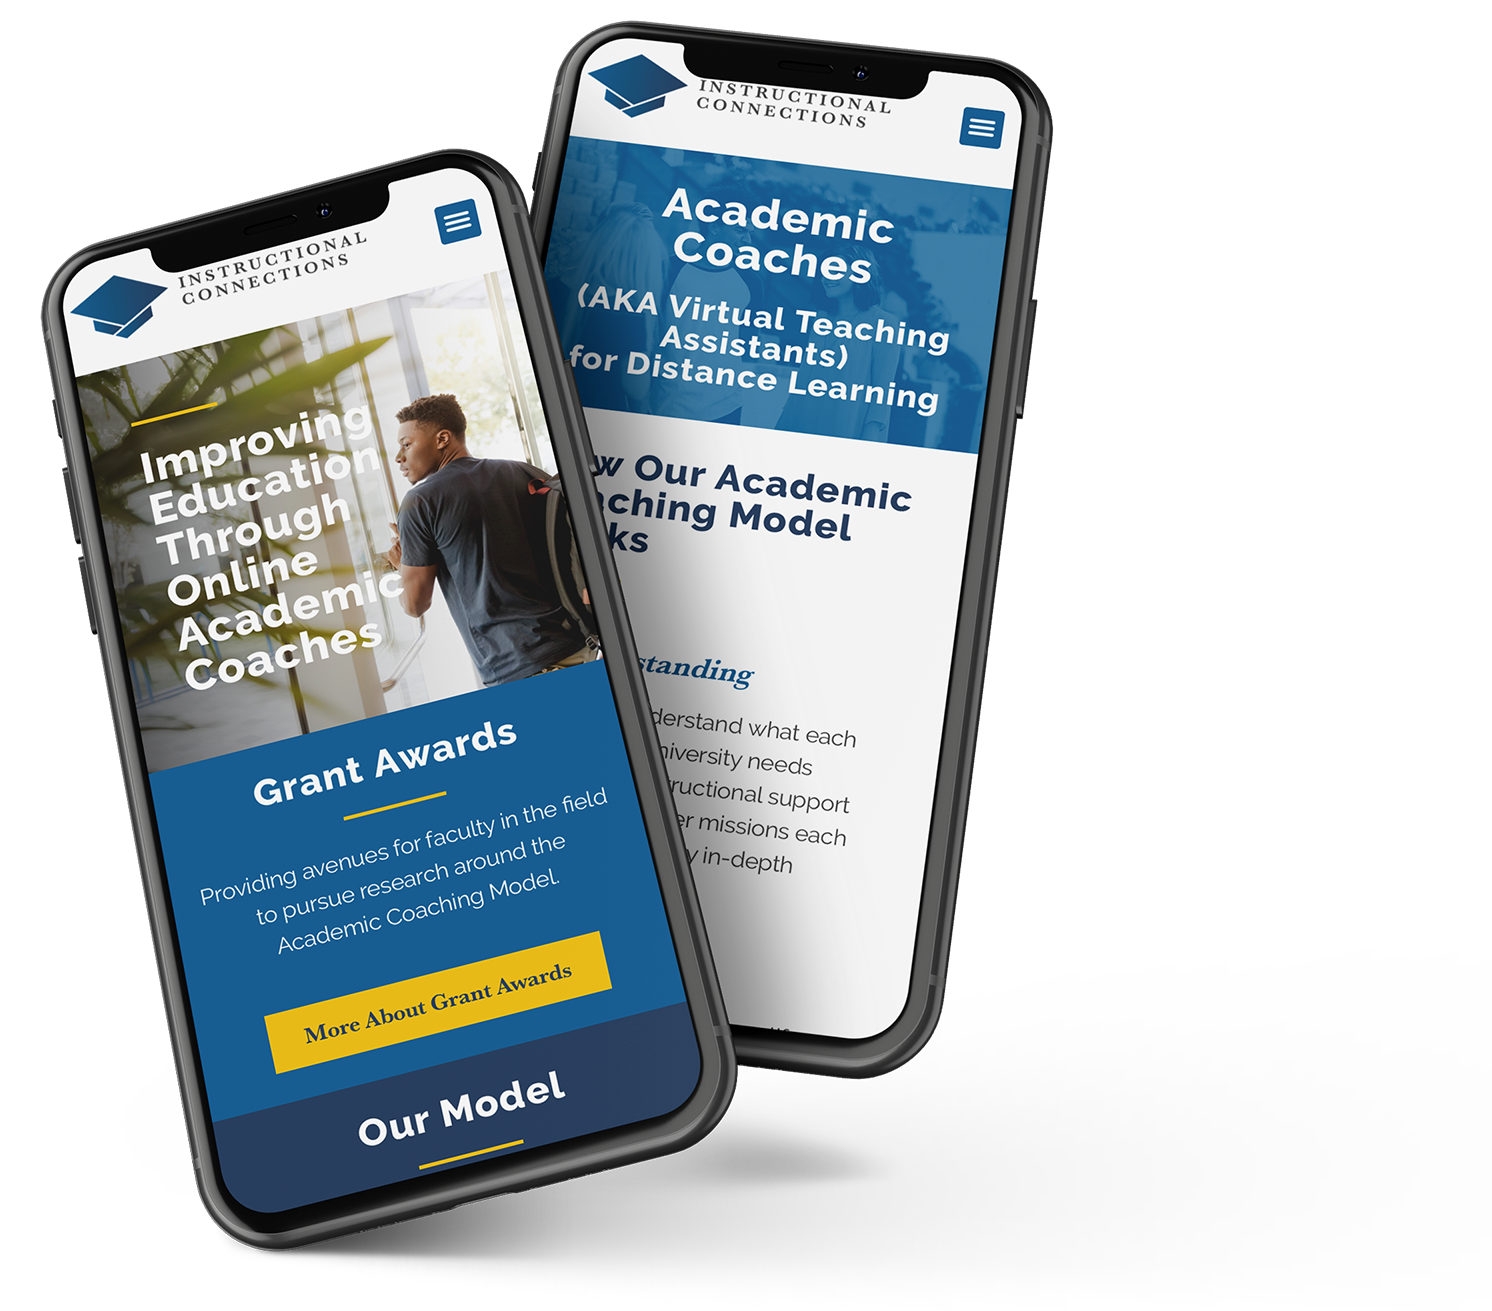 Mobile website design for Instructional Connections